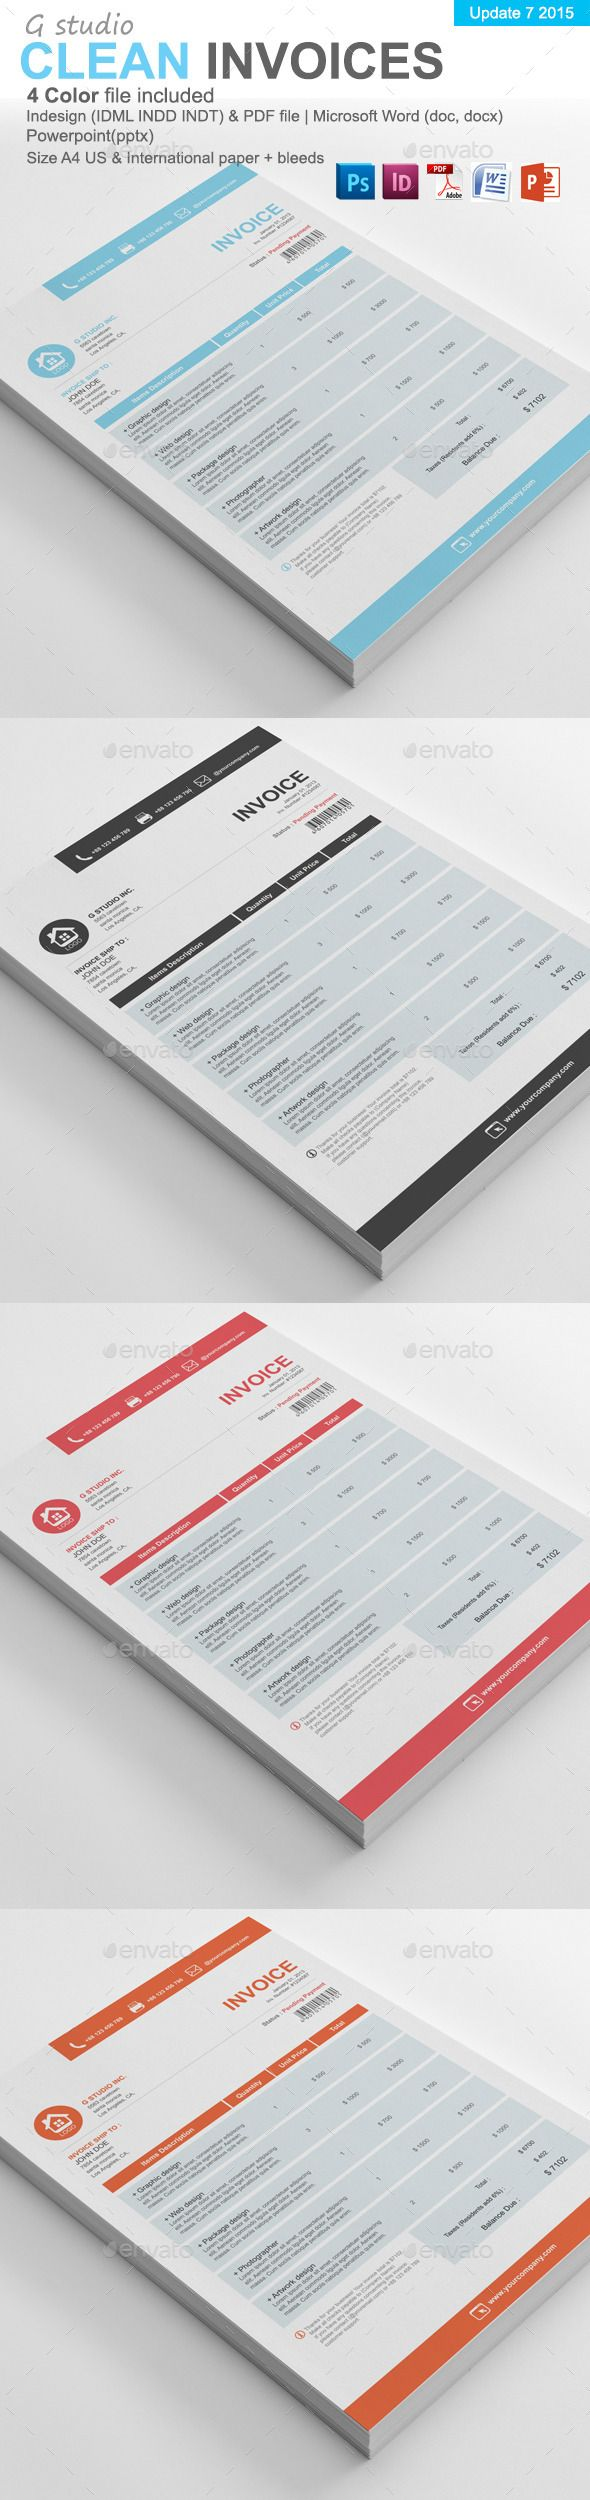 25 best Invoicing images on Pinterest | Invoice template, Proposal ...